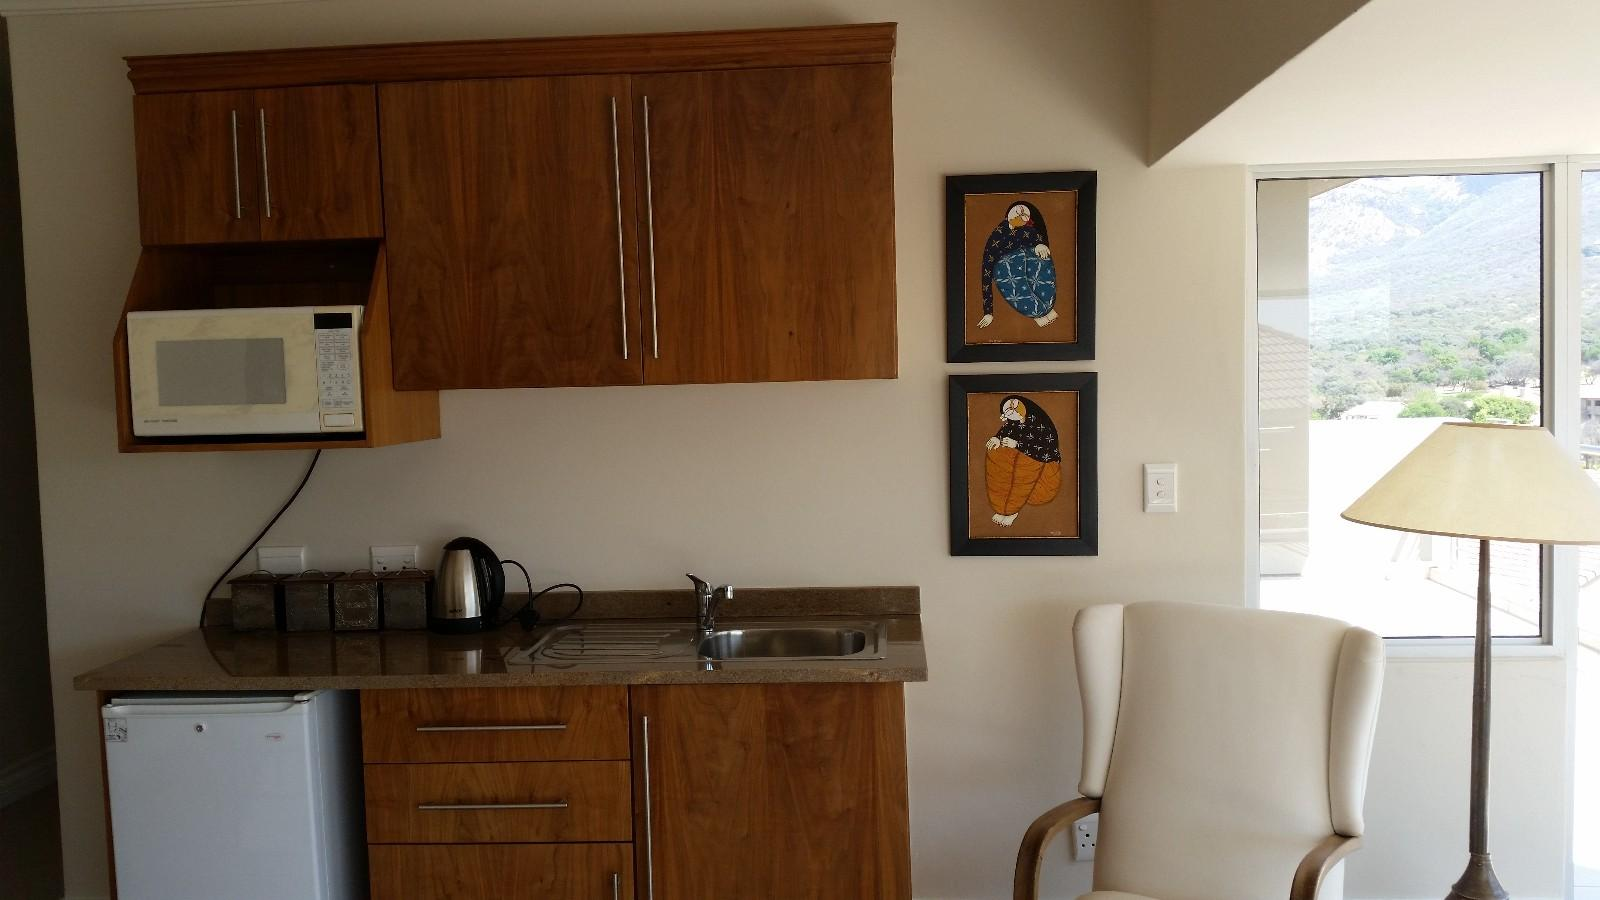 House in Magalies River Club and Golf Estate - kitchenette_foyer_1st_level.jpg